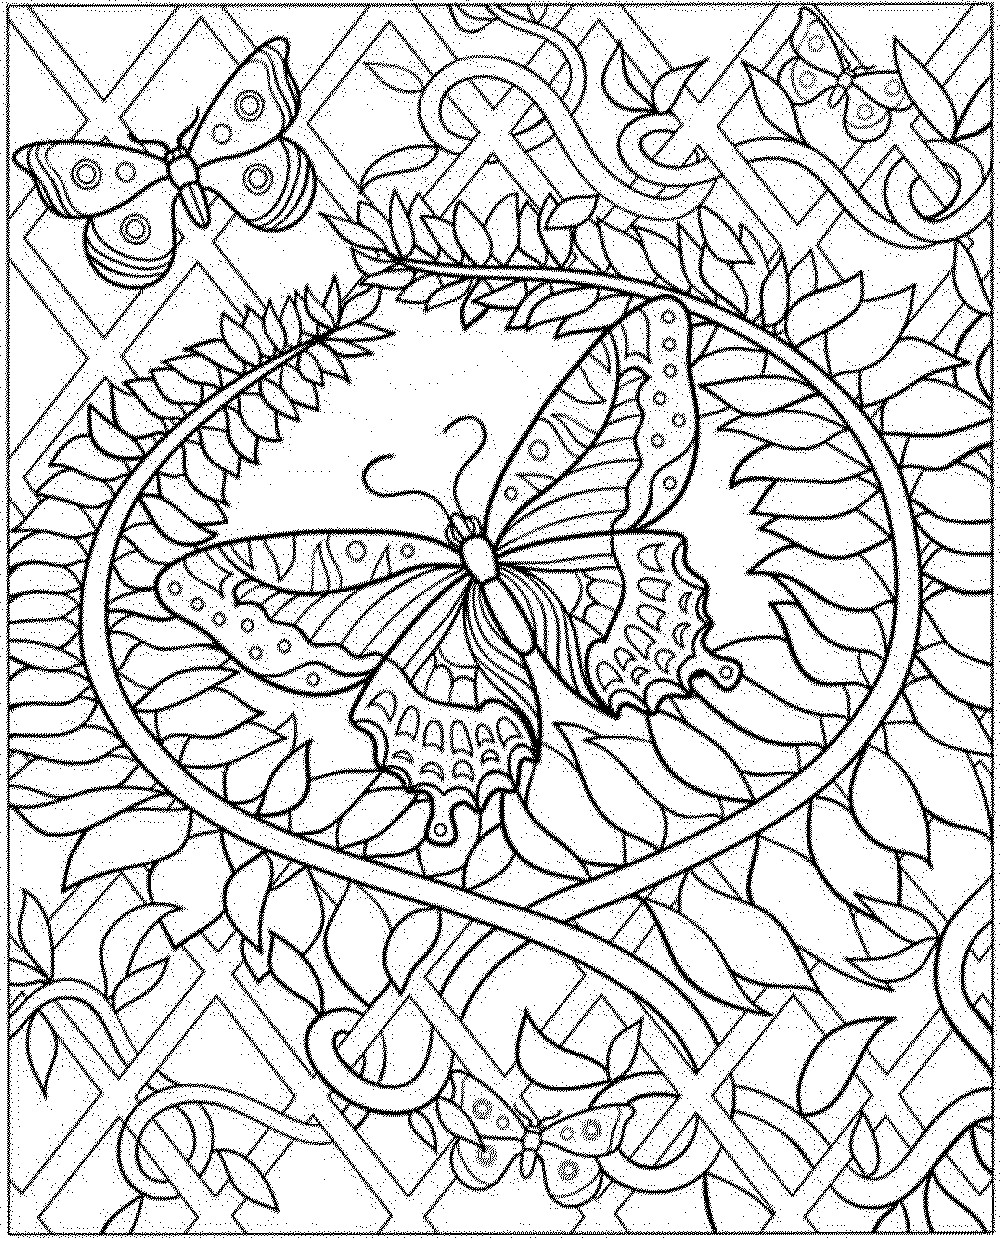 Best ideas about Fun Printable Coloring Pages For Adults . Save or Pin Intricate Mandala Coloring Pages Free For Kids Now.